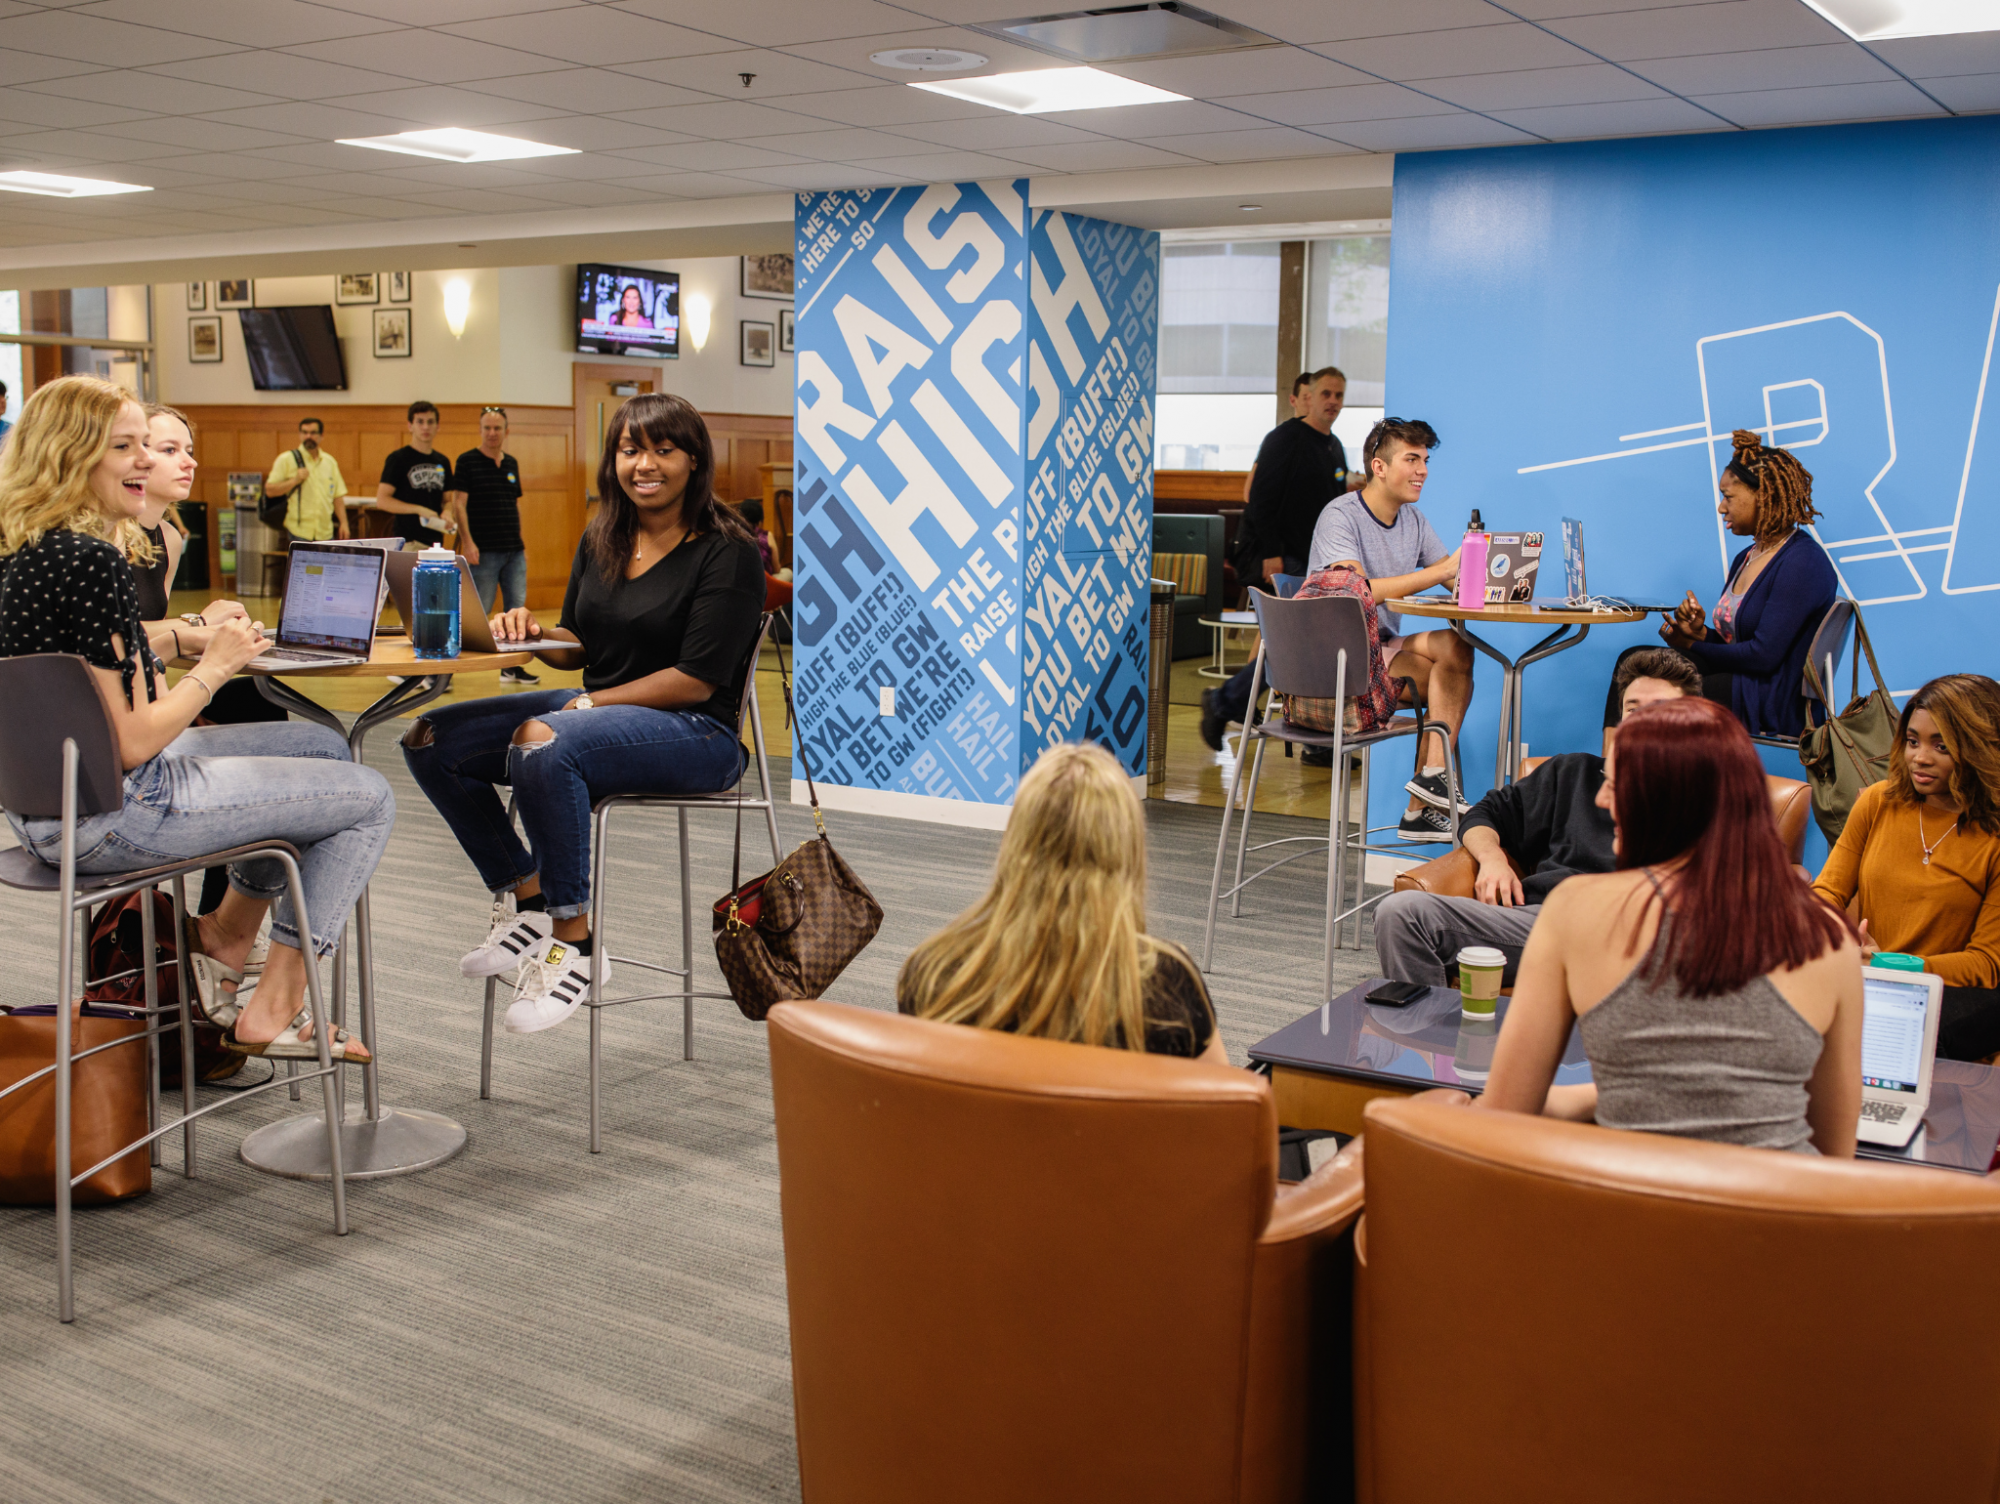 Students socializing in the Student Activities Center lobby in the Marvin Center